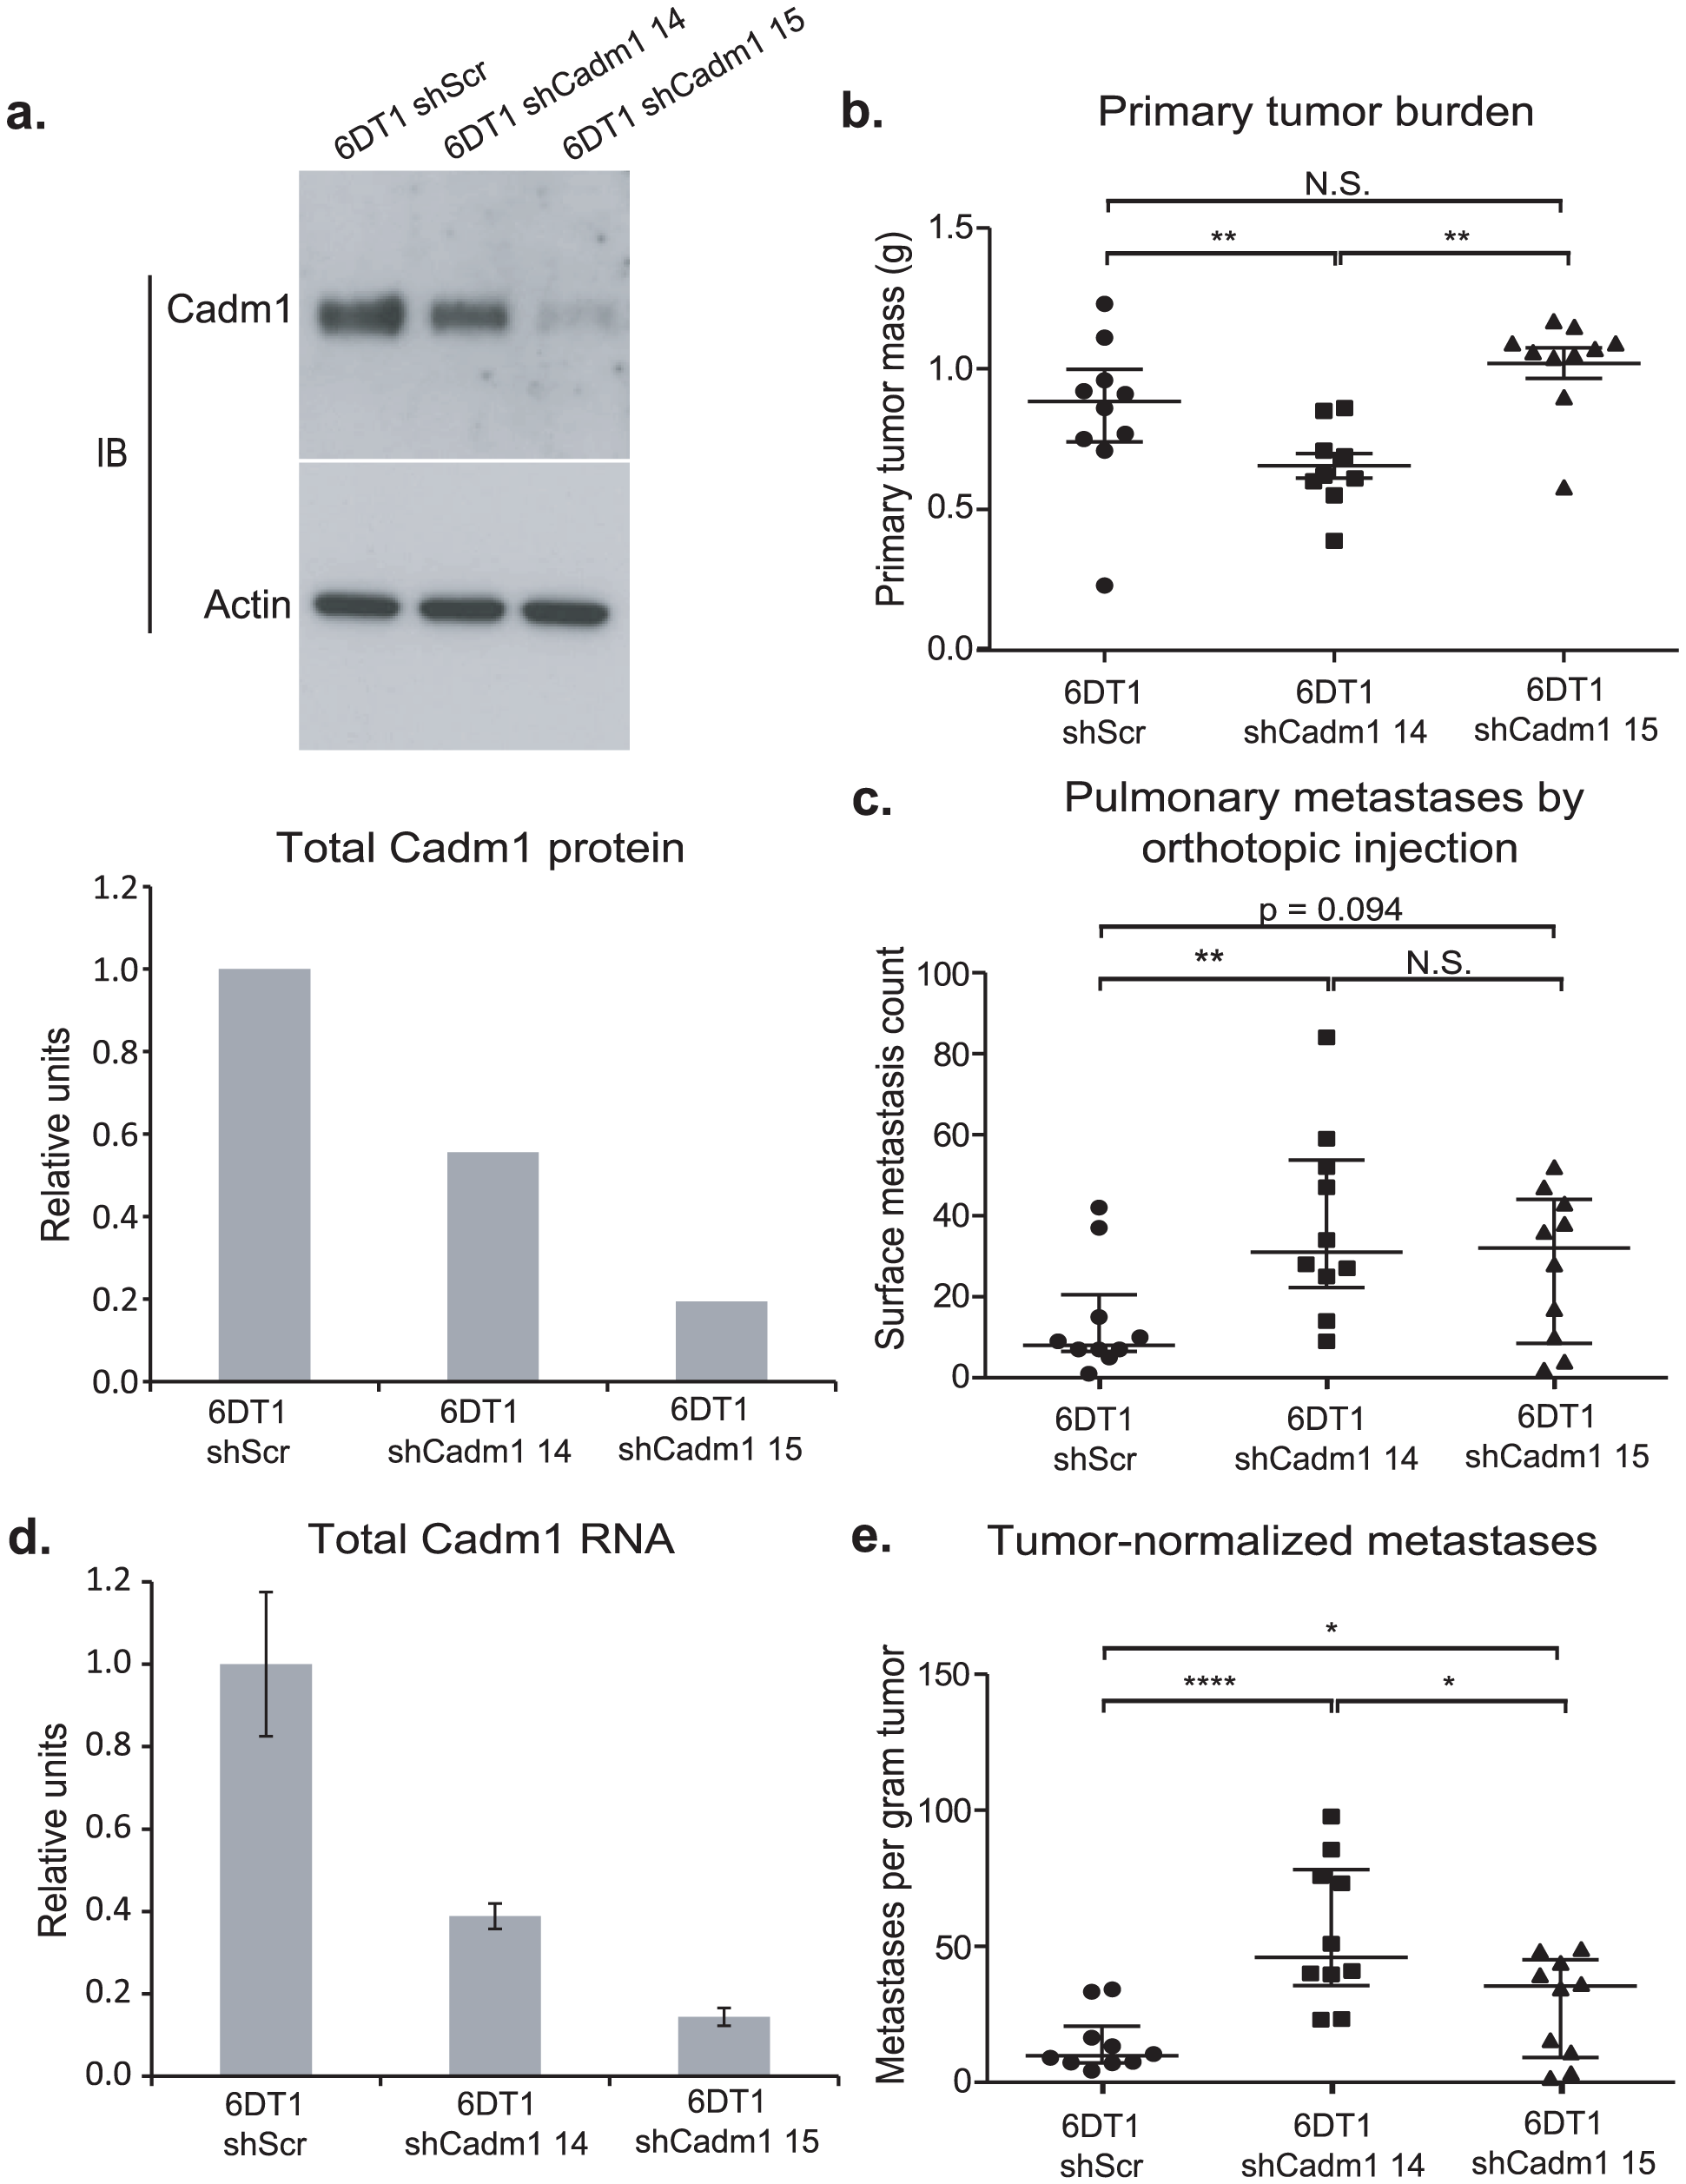 The effect of <i>Cadm1</i> knockdown on tumor growth and metastasis <i>in vivo</i>.